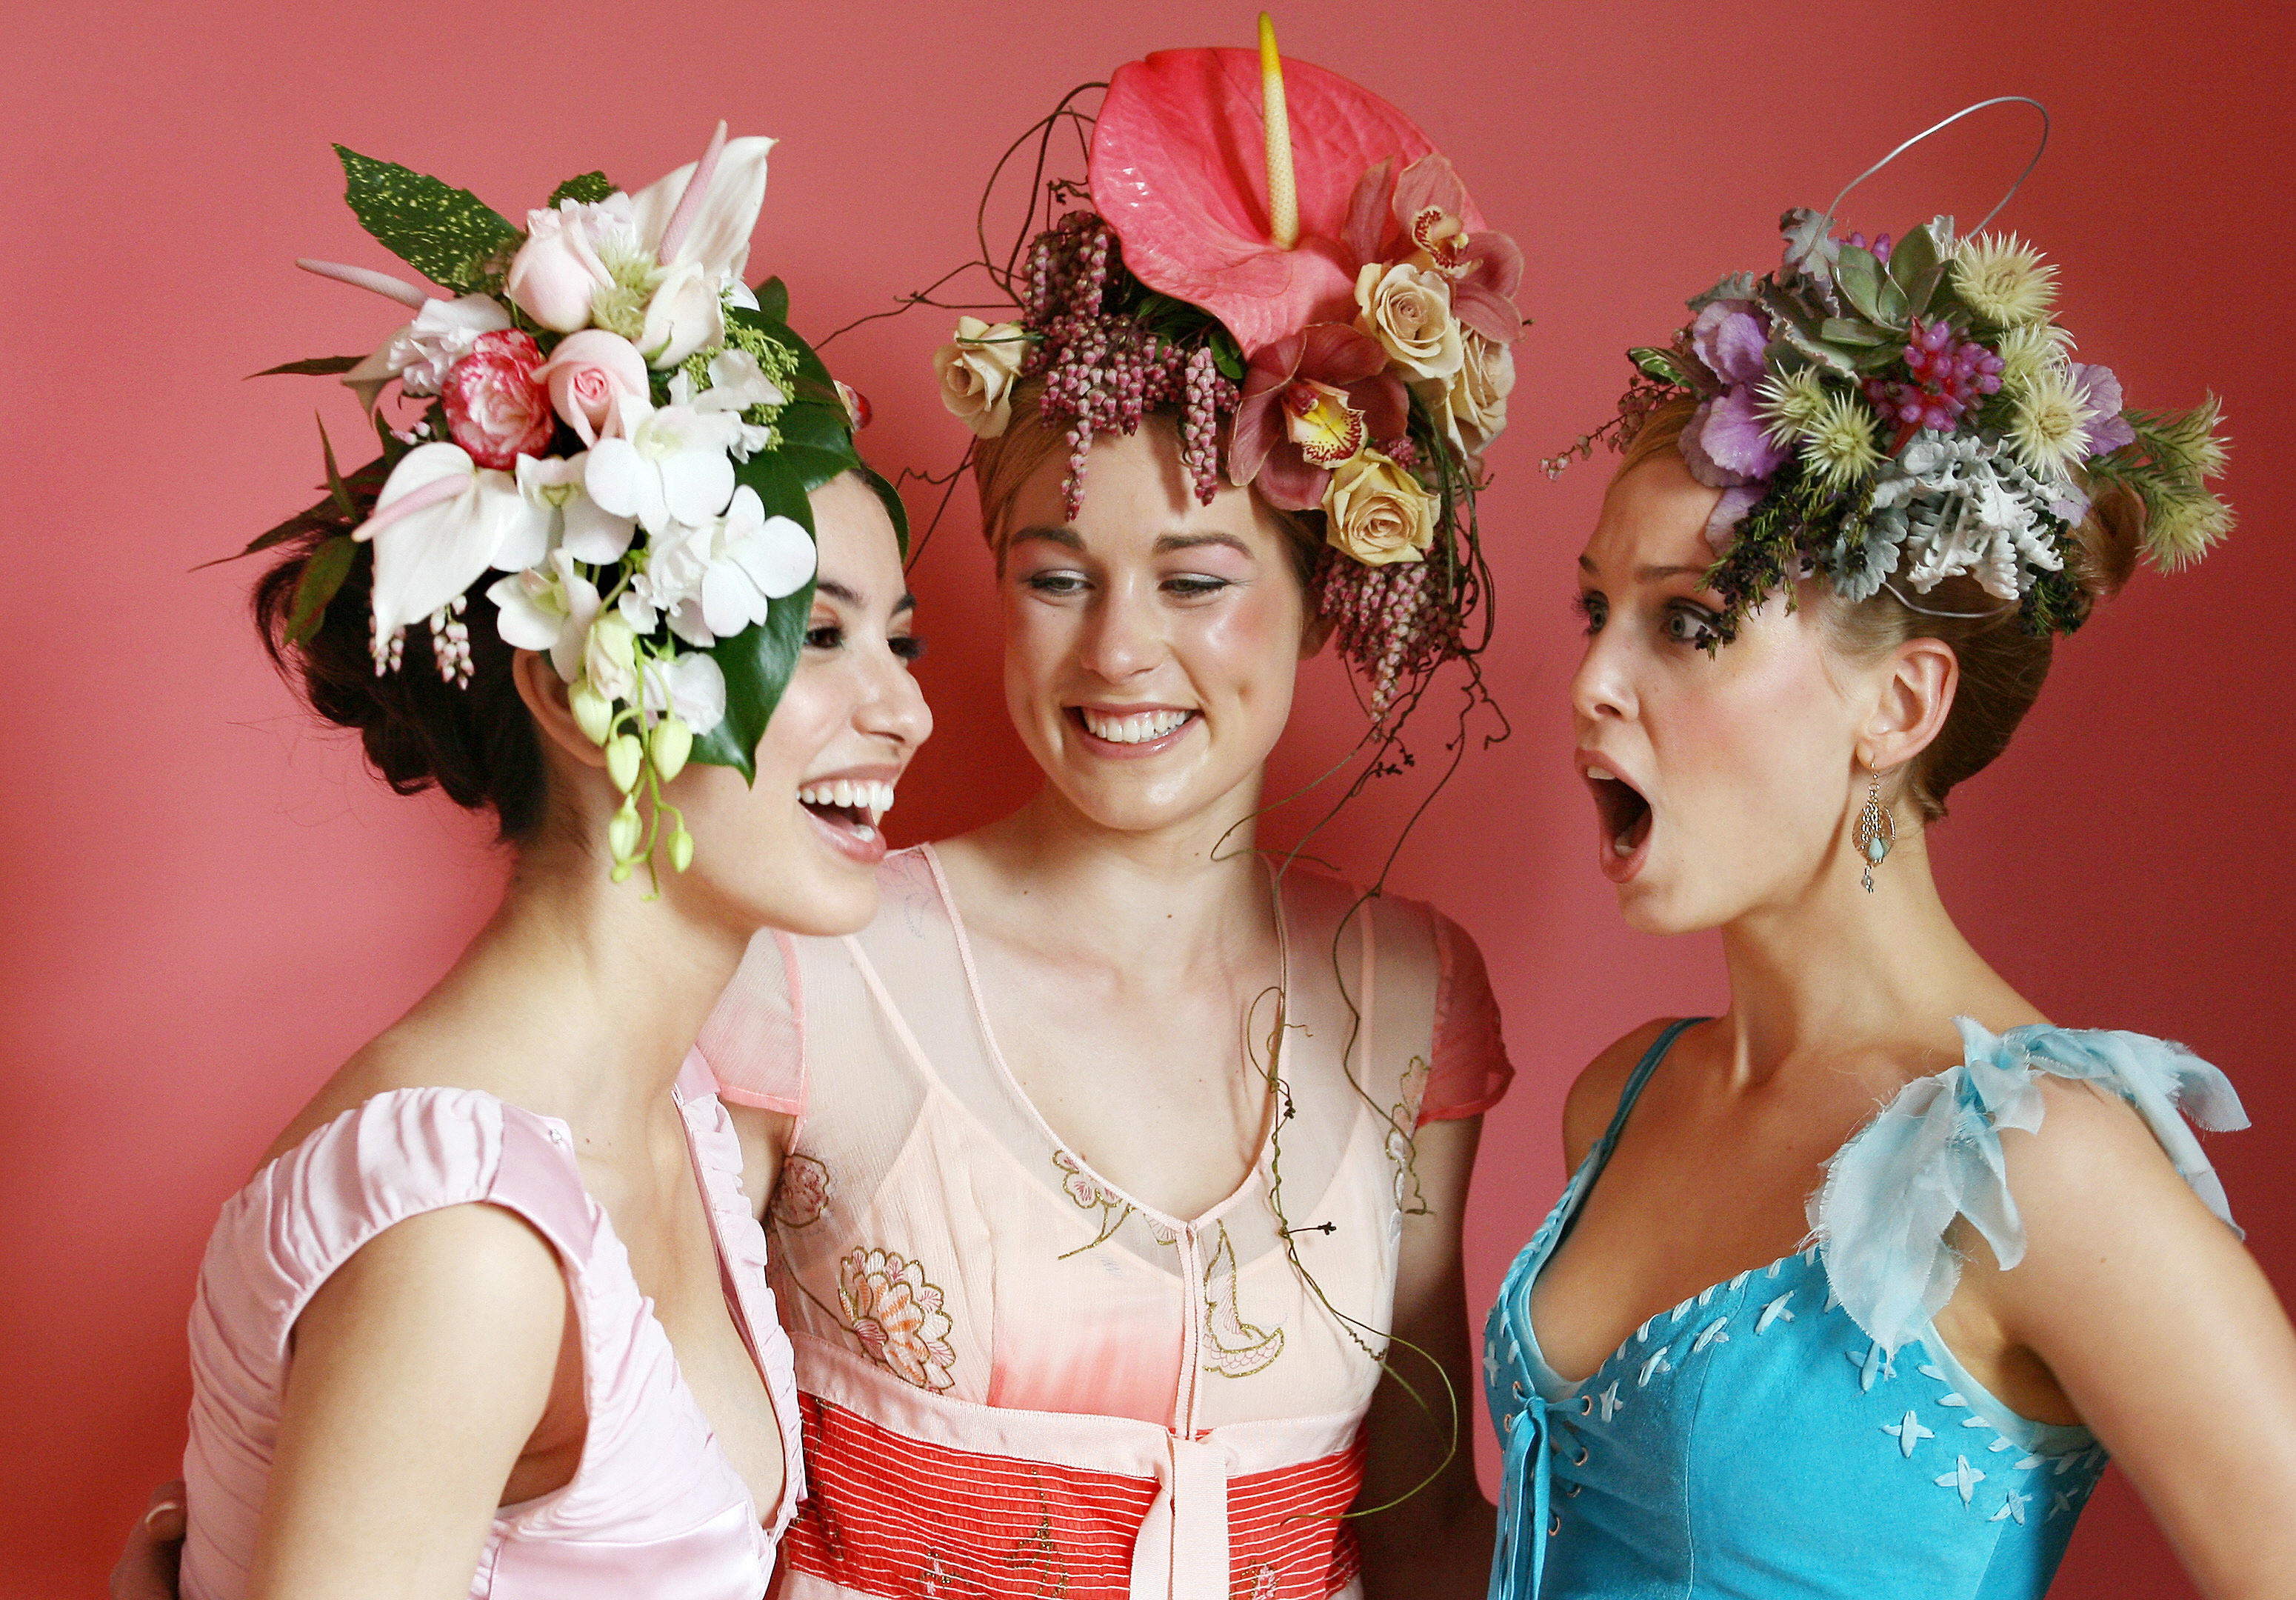 The Floral Hat May Be The New Flower Crown For Festival Style 4bfe531d42e